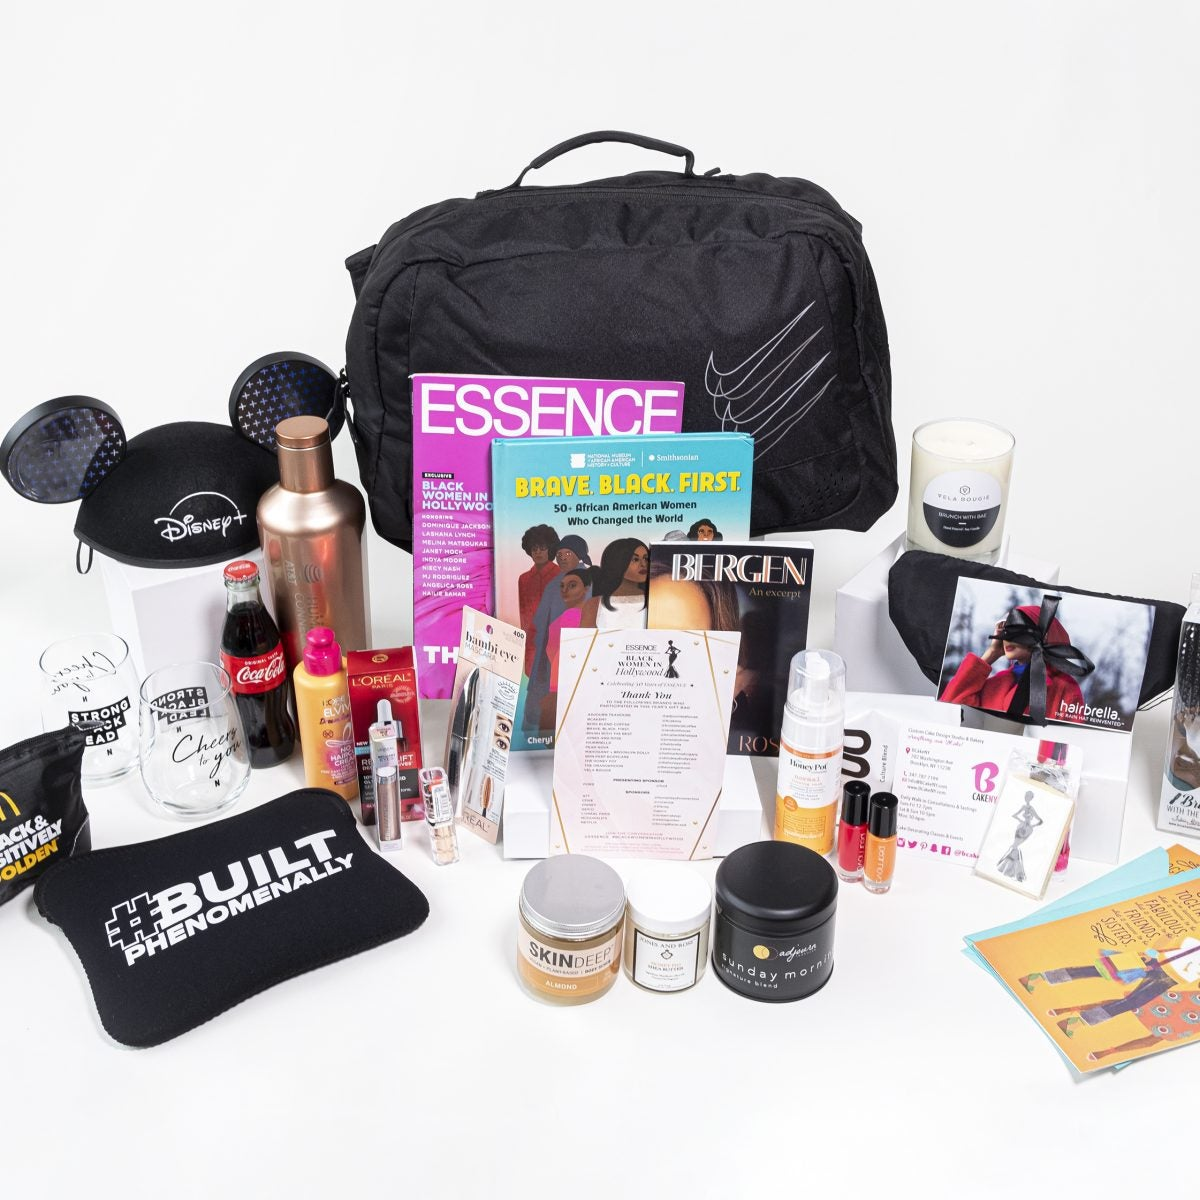 A Peek Inside The Official 2020 ESSENCE Black Women In Hollywood Gift Bag